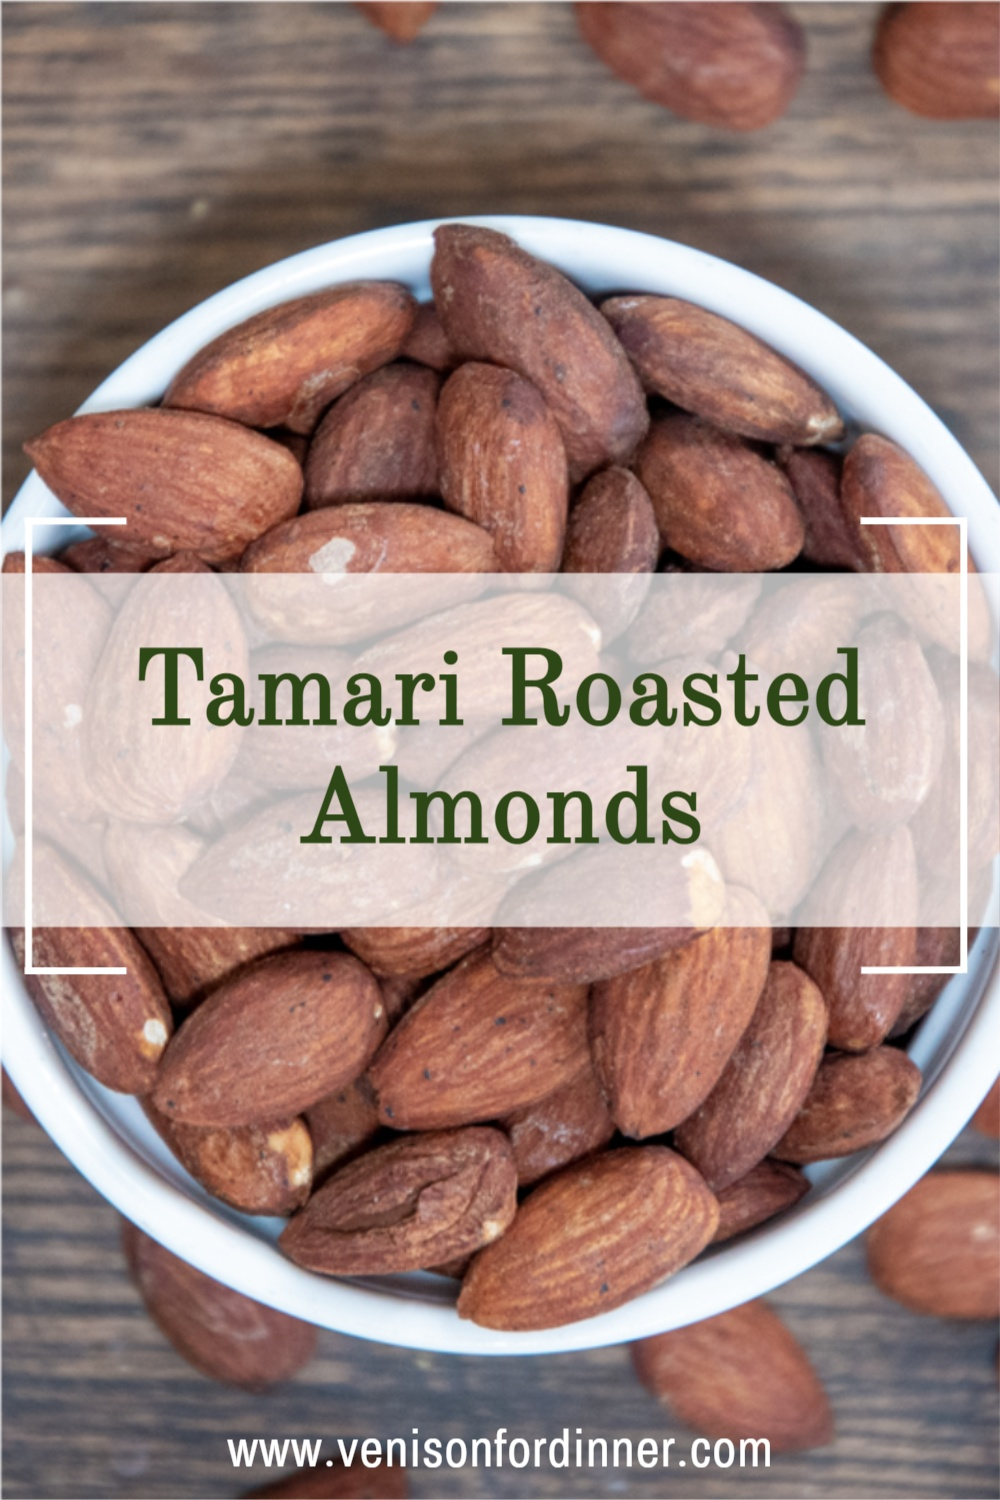 tamari roasted almonds in a white bowl from above